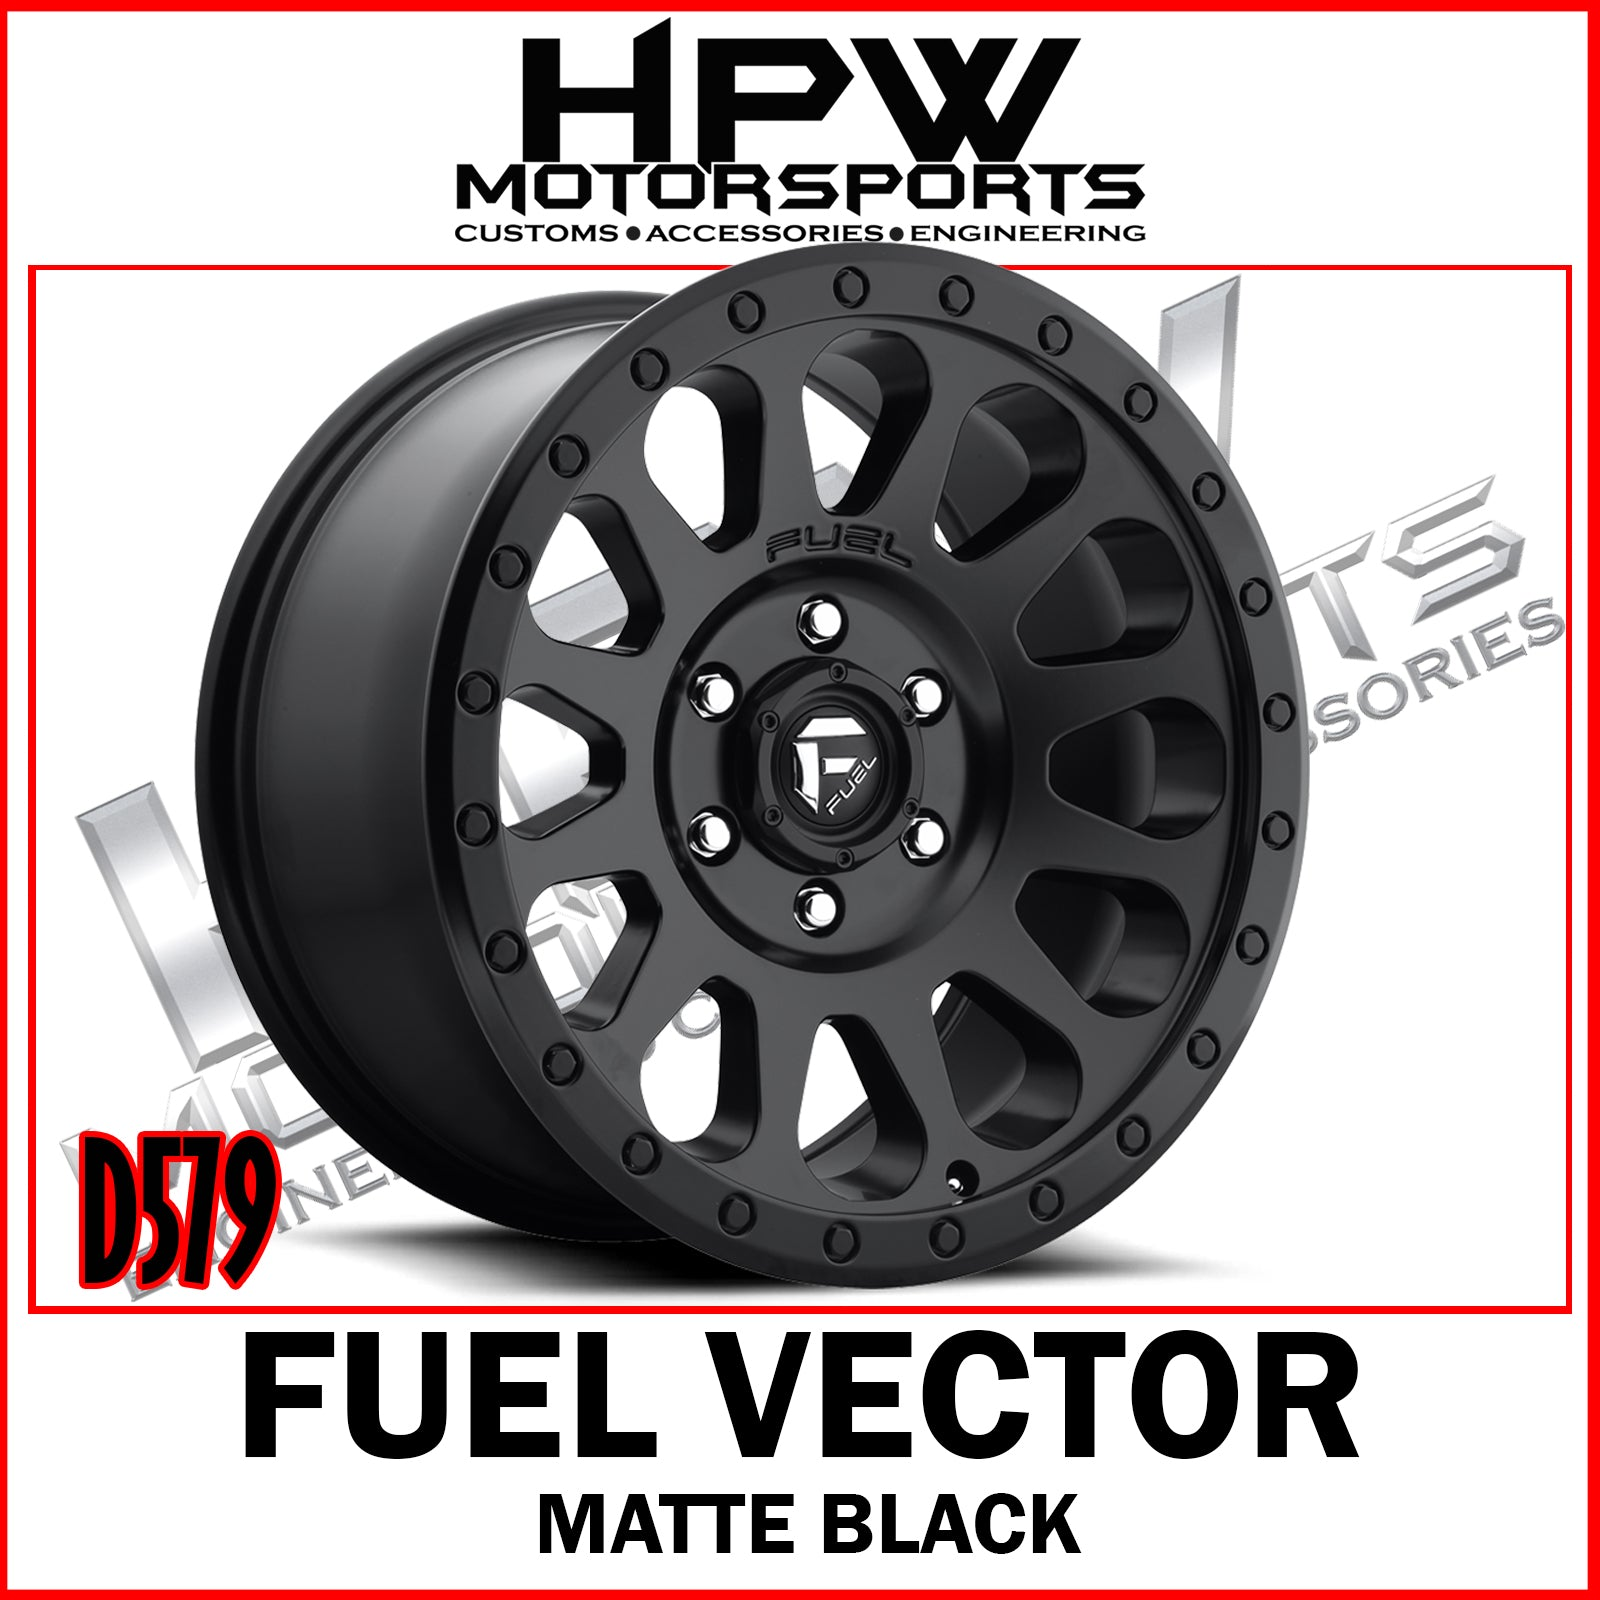 D579 FUEL VECTOR - MATTE BLACK - Set of 4